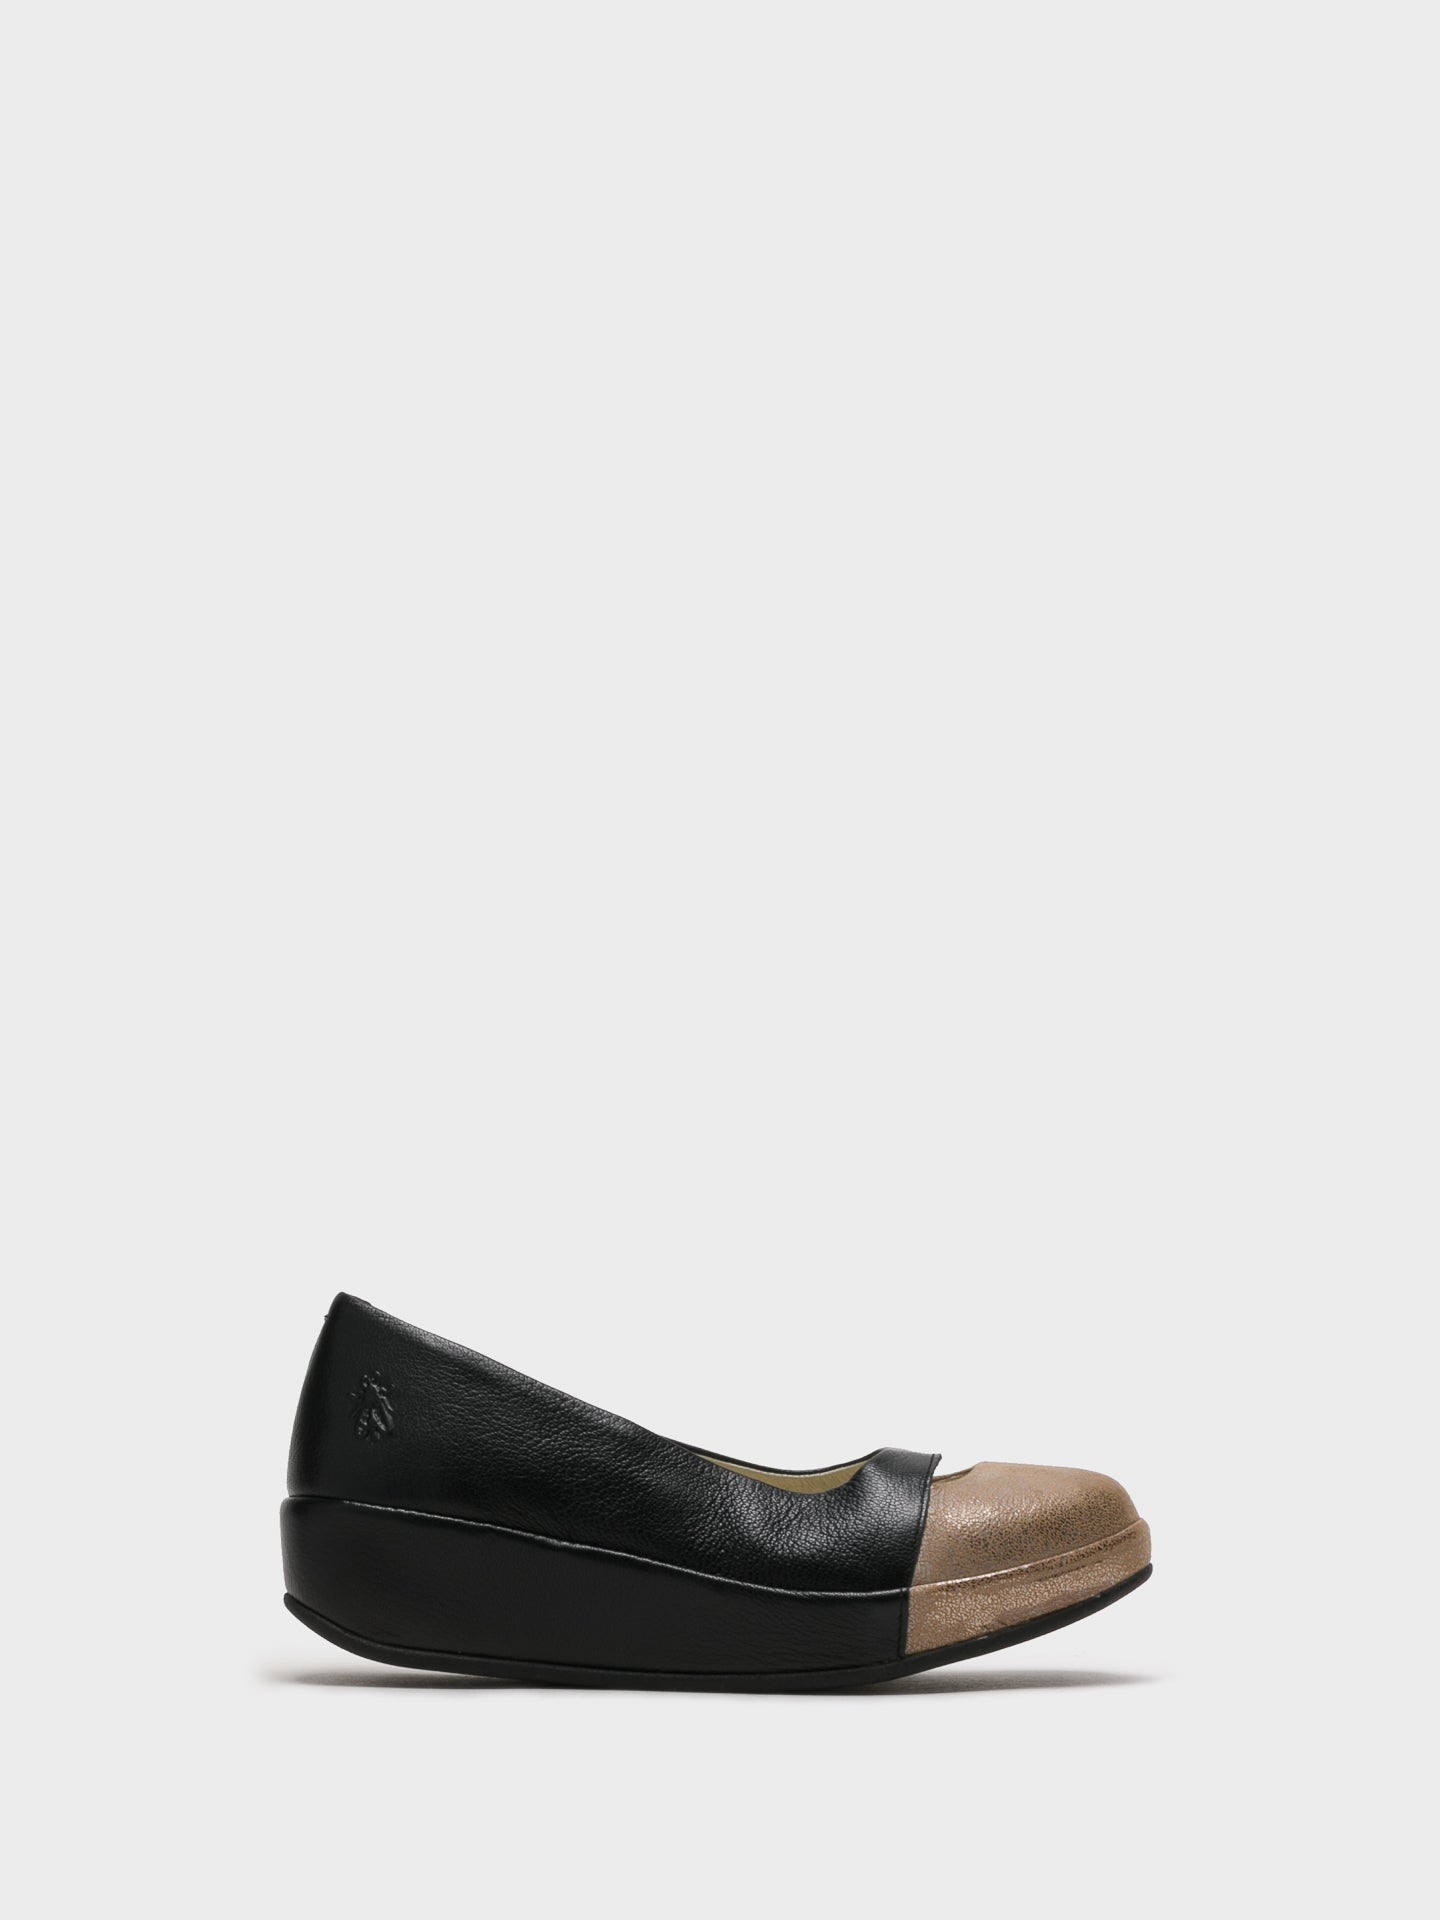 Fly London SandyBrown Wedge Ballerinas